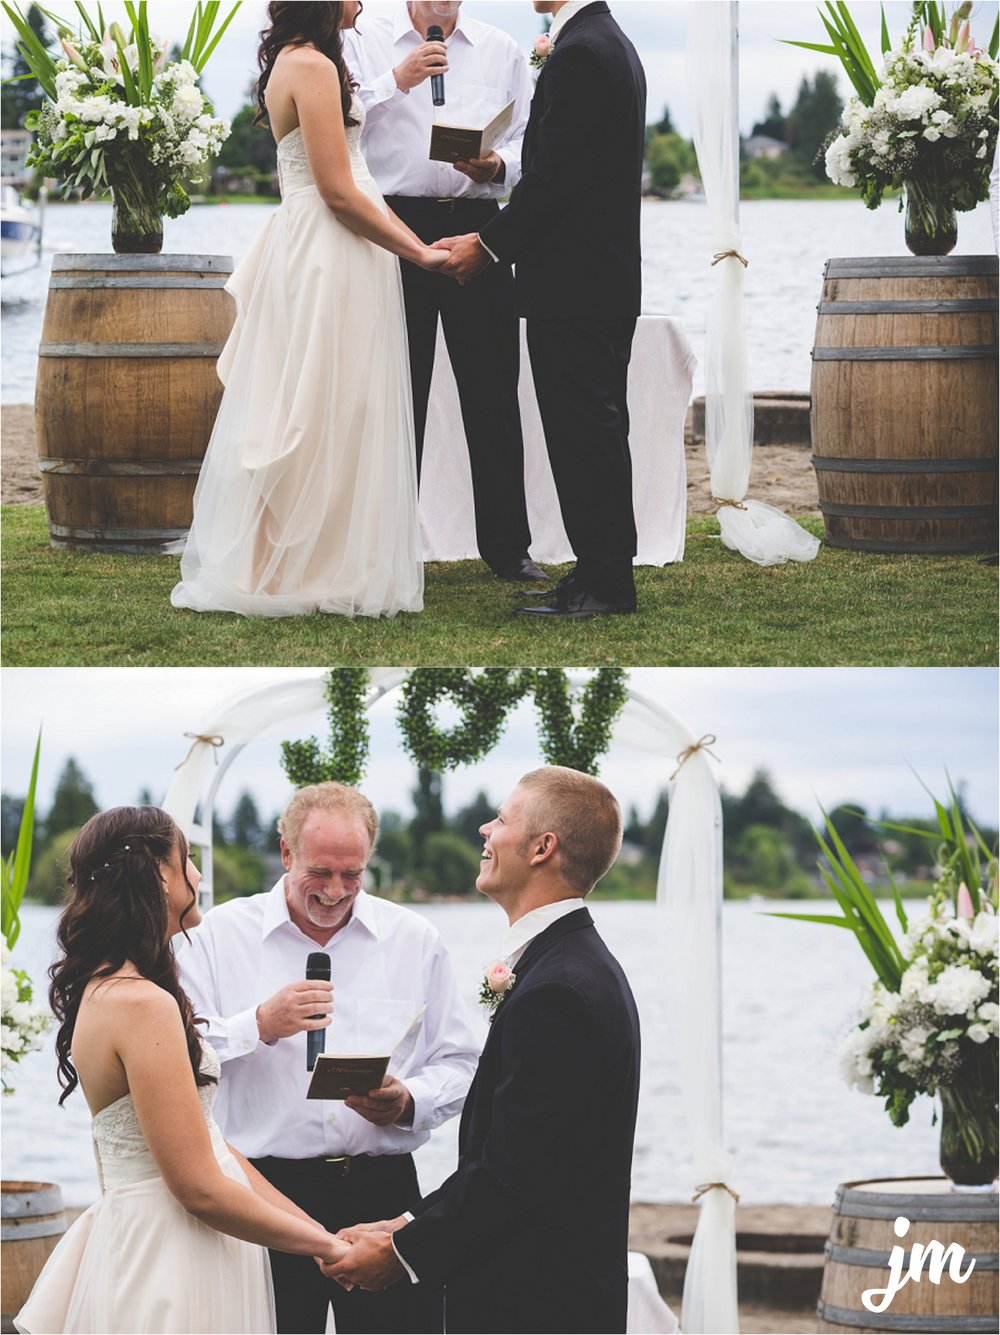 jannicka-mayte-intimate-backyard-lake-wedding-kent-wa-pacific-northwest-wedding-photographer_0045.jpg